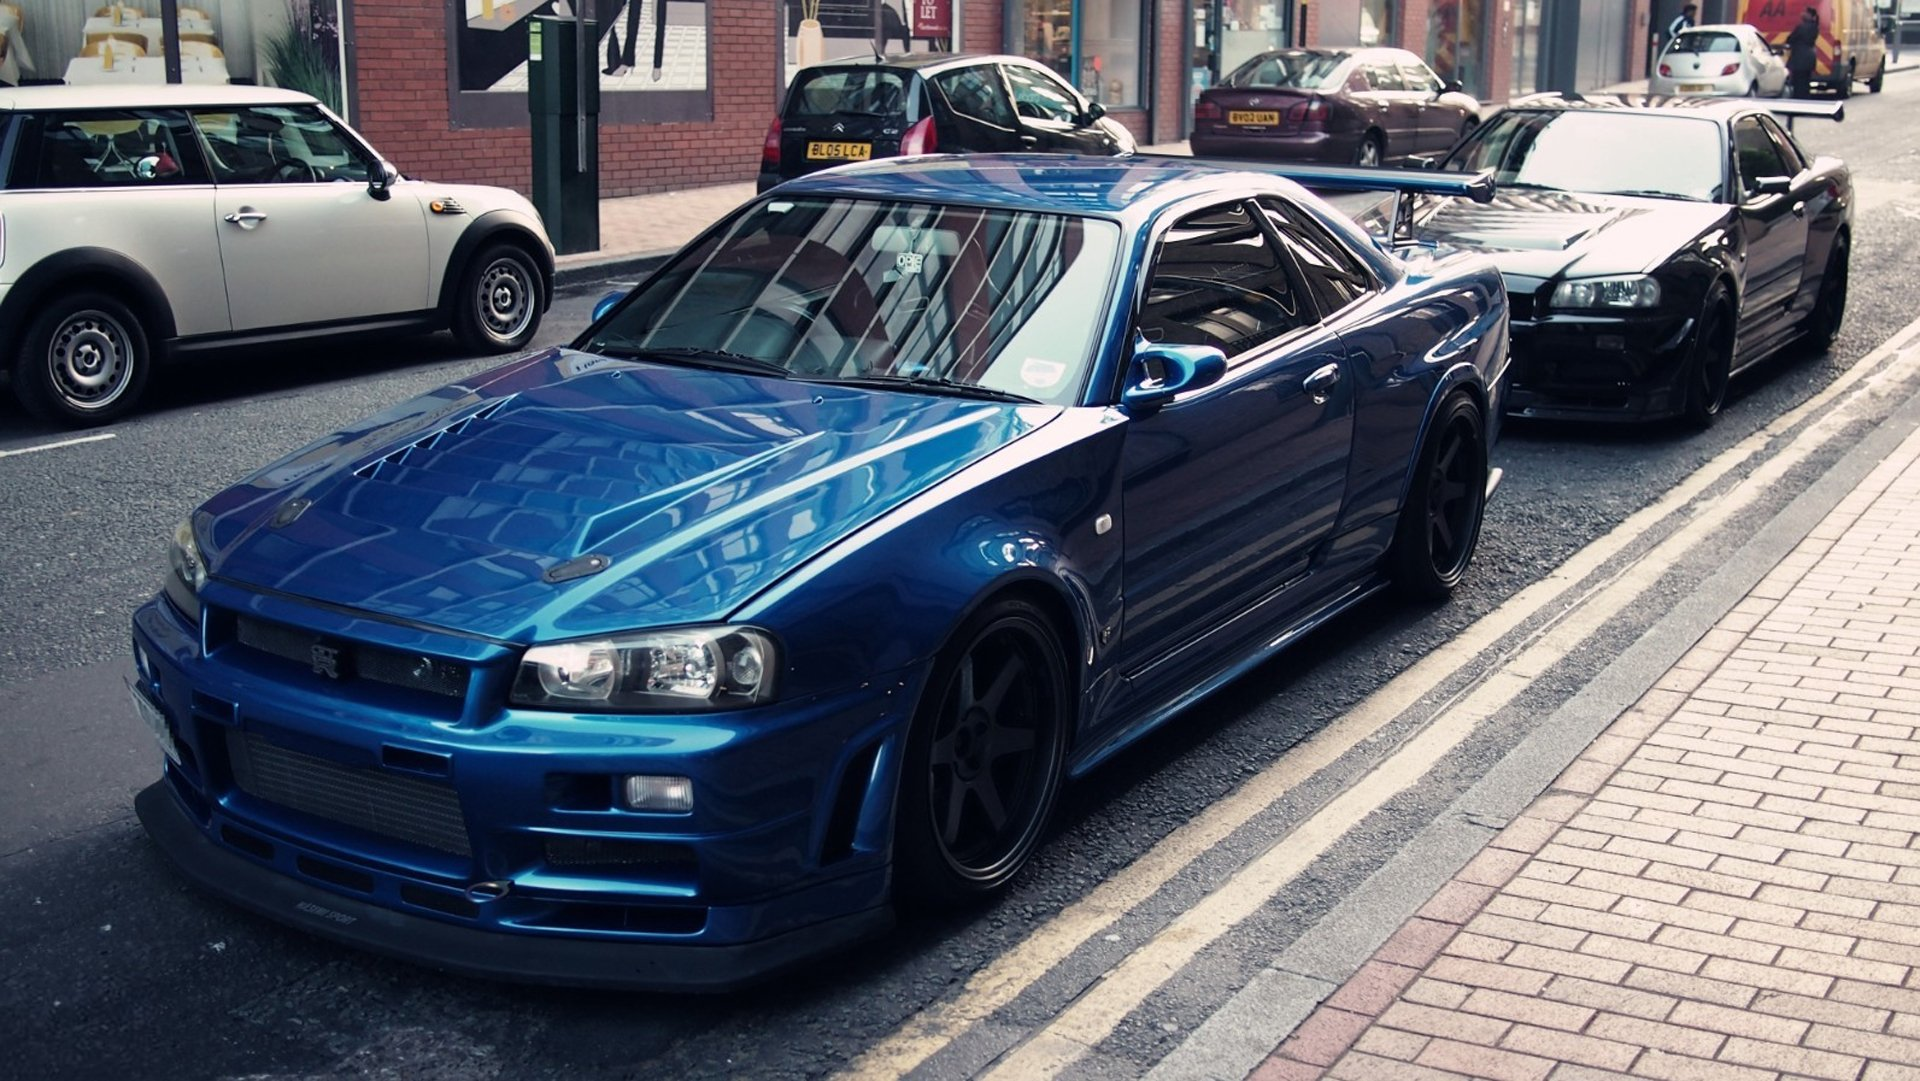 Nissan skyline hd wallpaper background image 1920x1081 id 466955 wallpaper abyss - Nissan skyline background ...